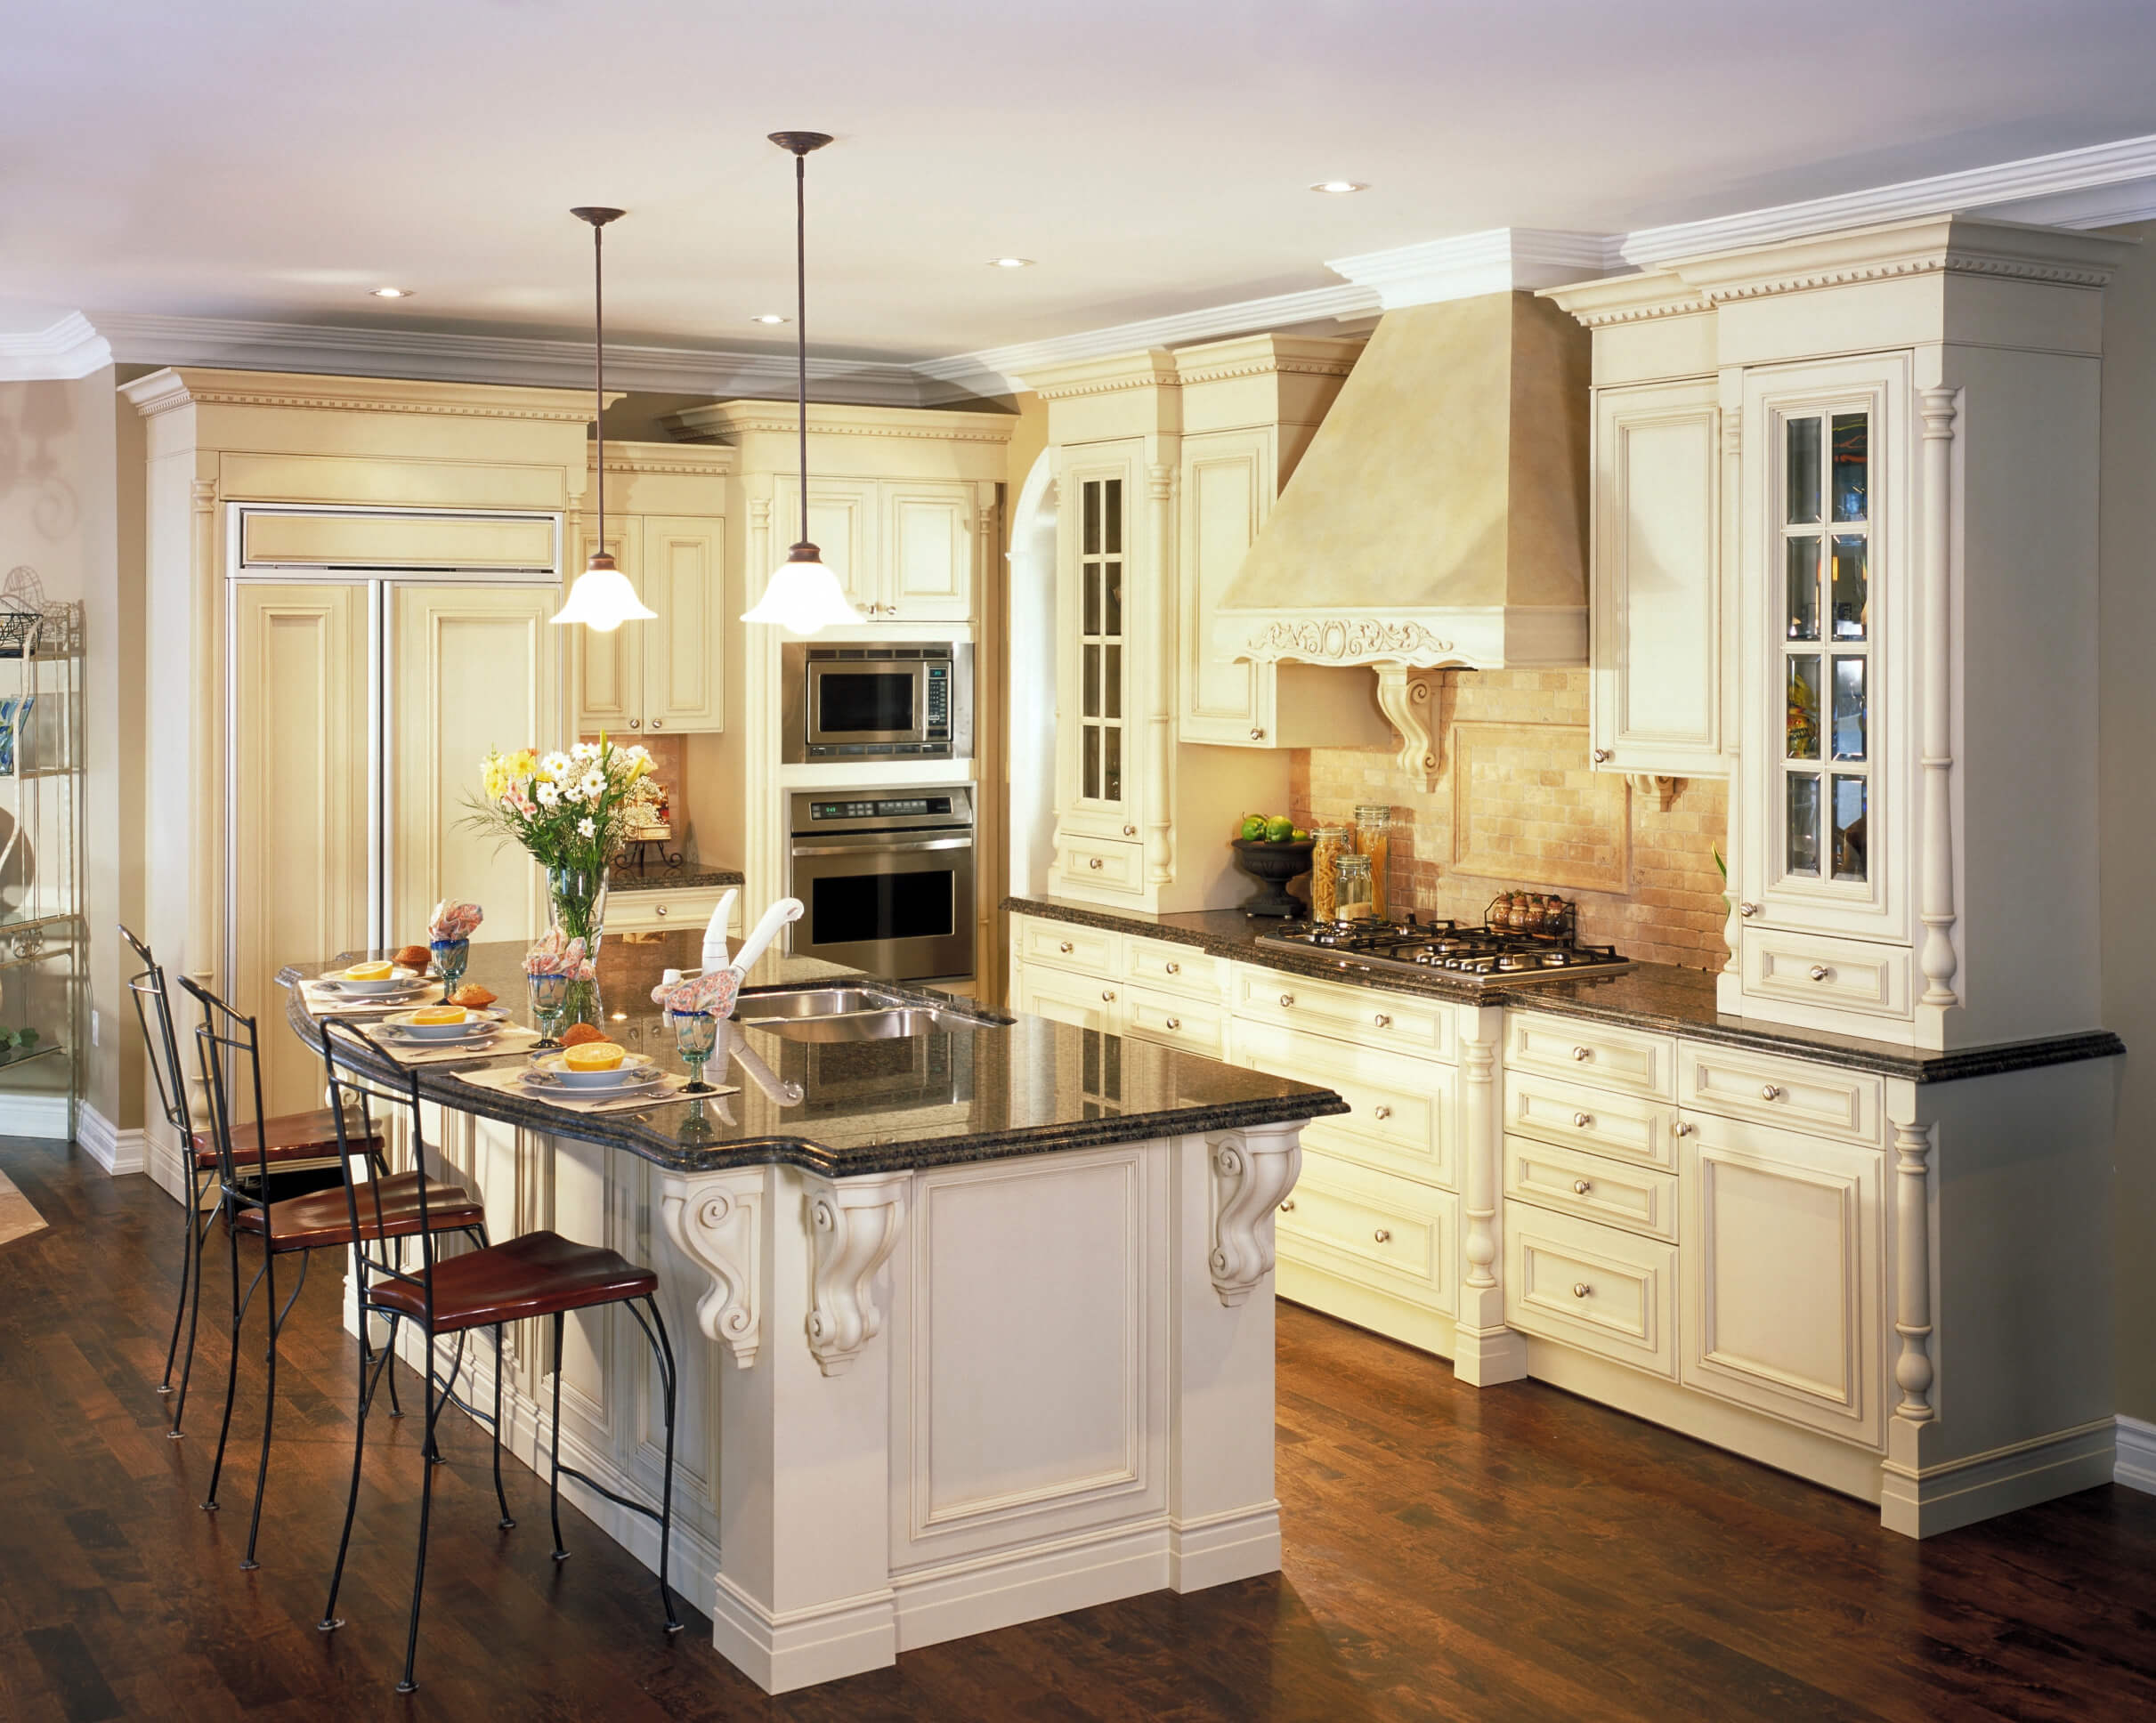 dream kitchen designs glass kitchen countertops Kitchen featuring great contrast between dark wood flooring white cabinetry and black marble countertops